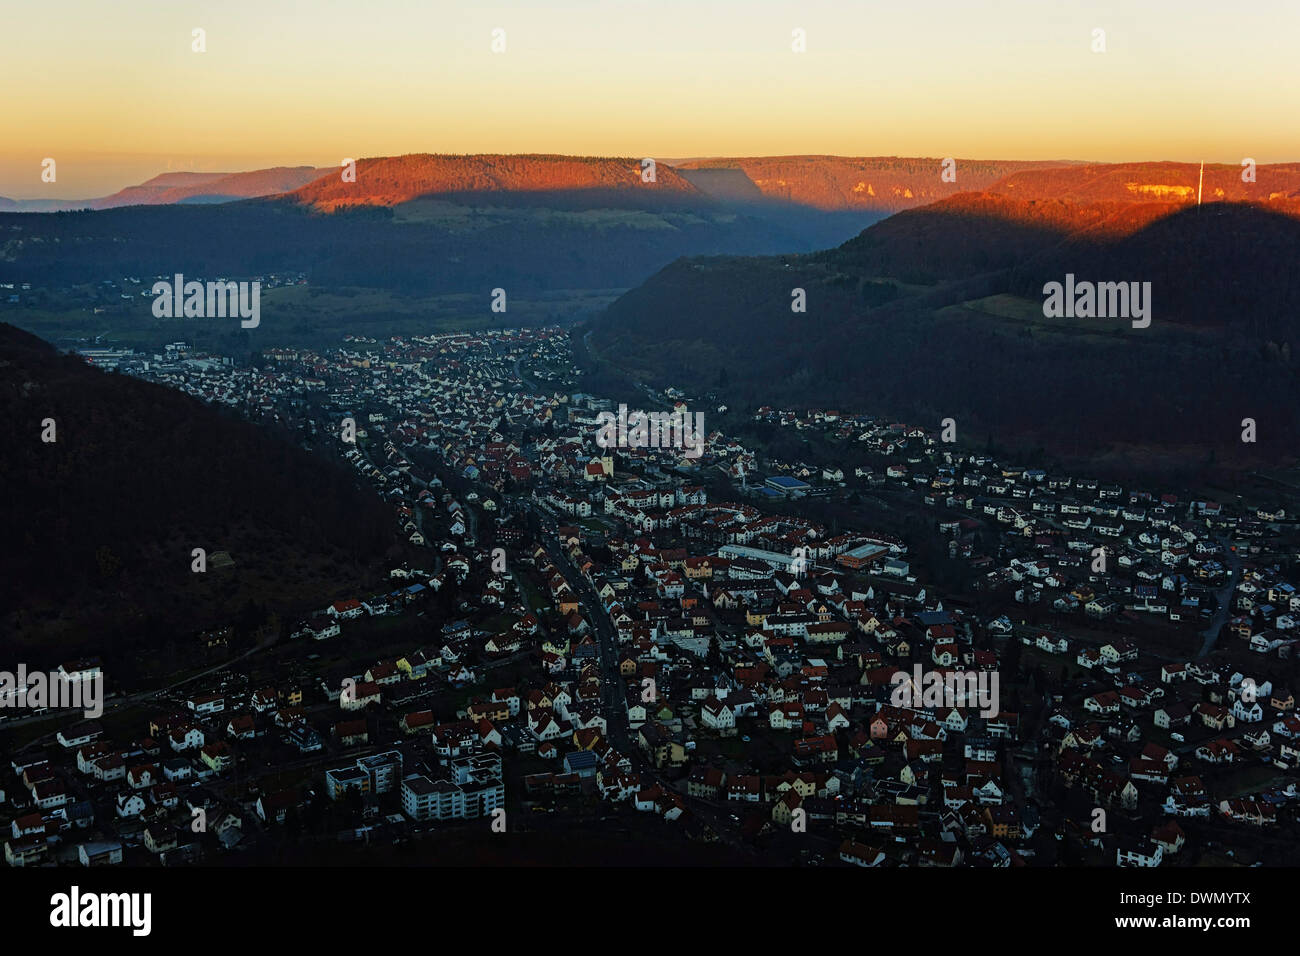 Evening view of Lichtenstein village, Swabian Alb, Baden-Wurttemberg, Germany, Europe - Stock Image